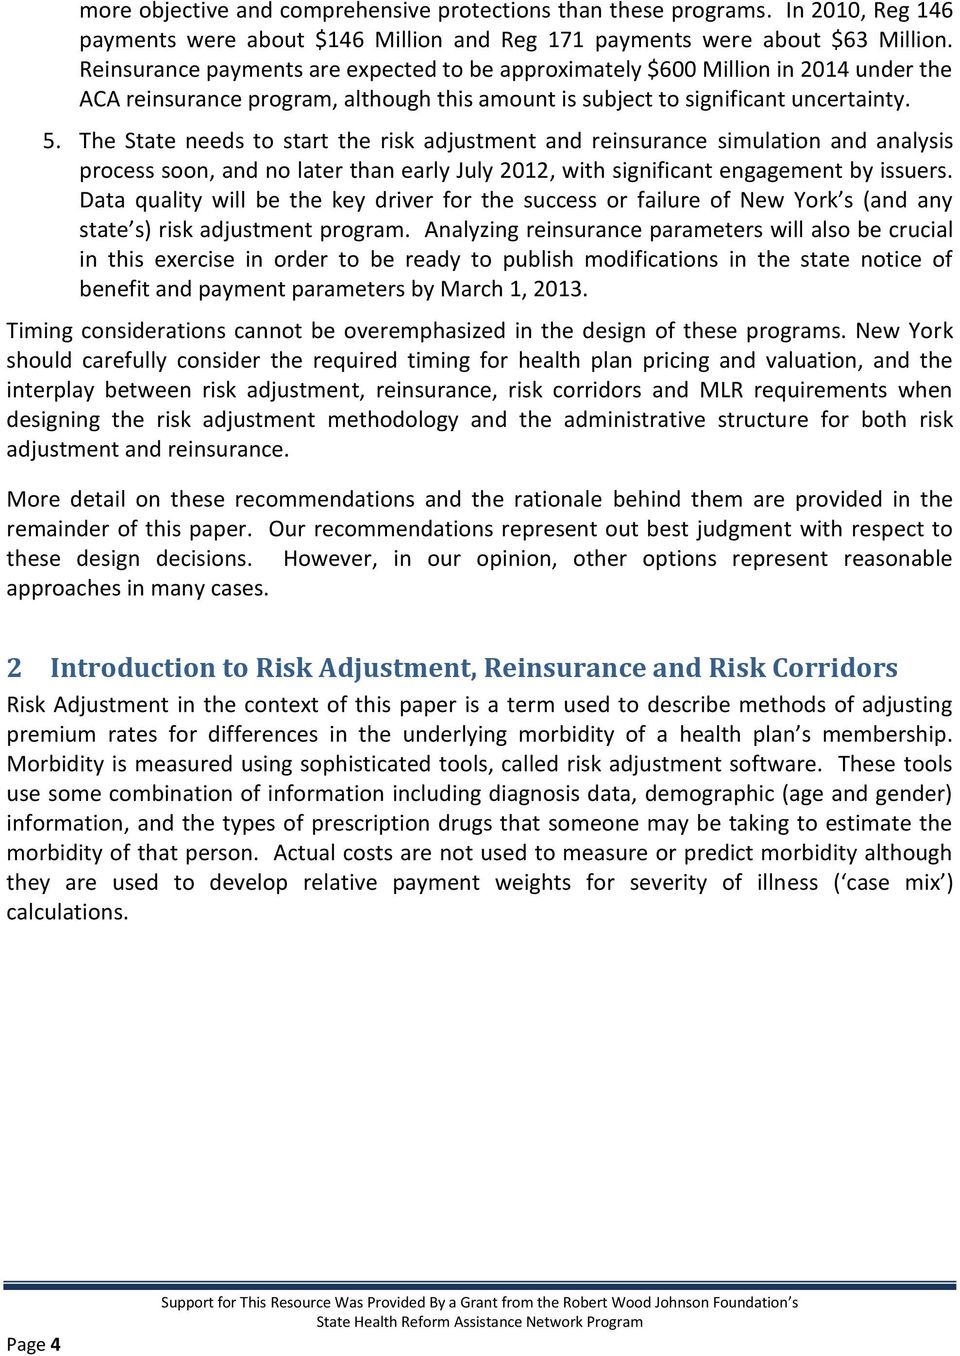 The State needs to start the risk adjustment and reinsurance simulation and analysis process soon, and no later than early July 2012, with significant engagement by issuers.